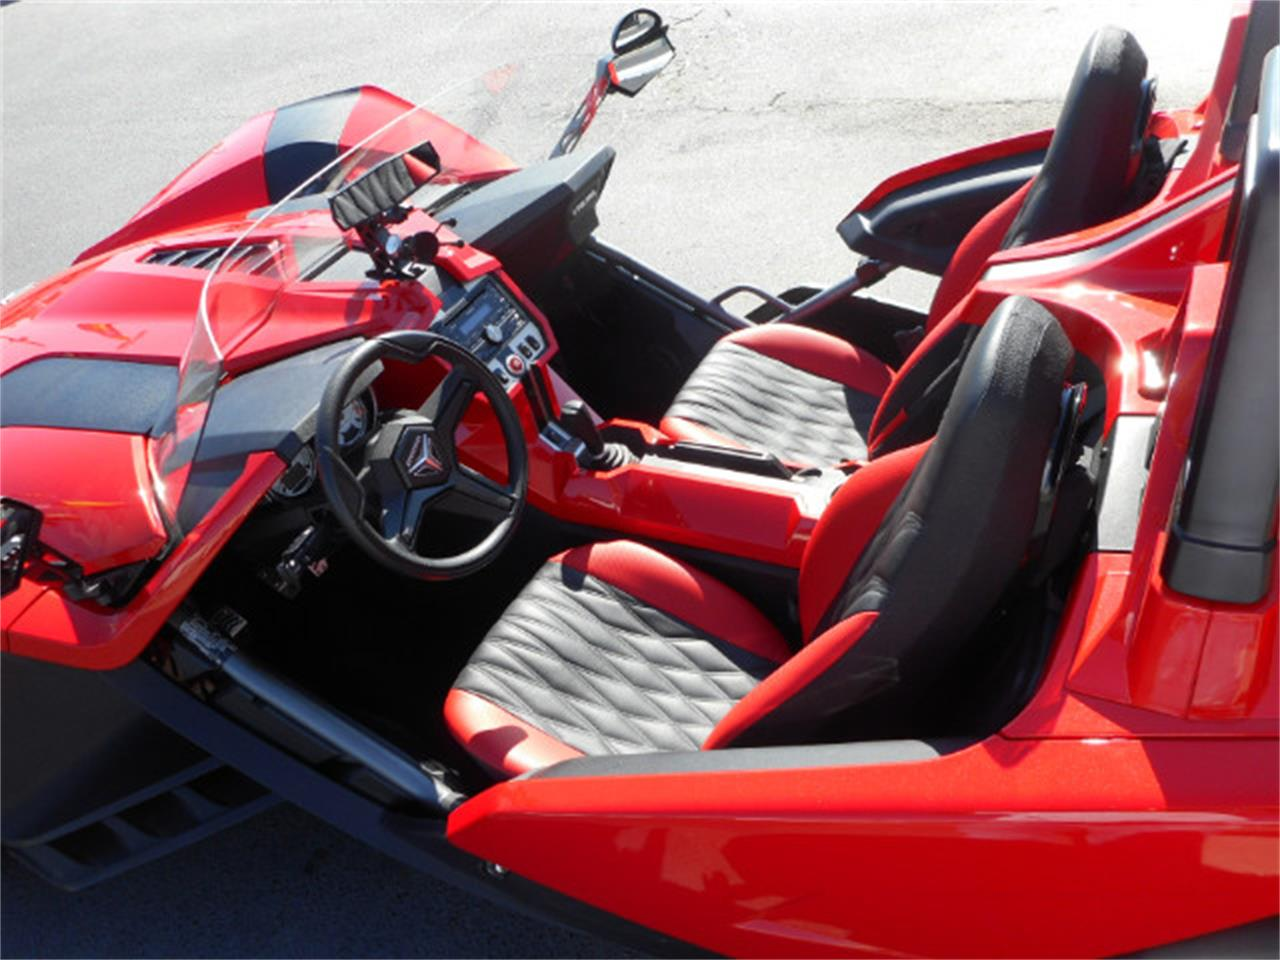 Large Picture of '15 Polaris Slingshot - $18,999.00 Offered by Classic Connections - JOAT